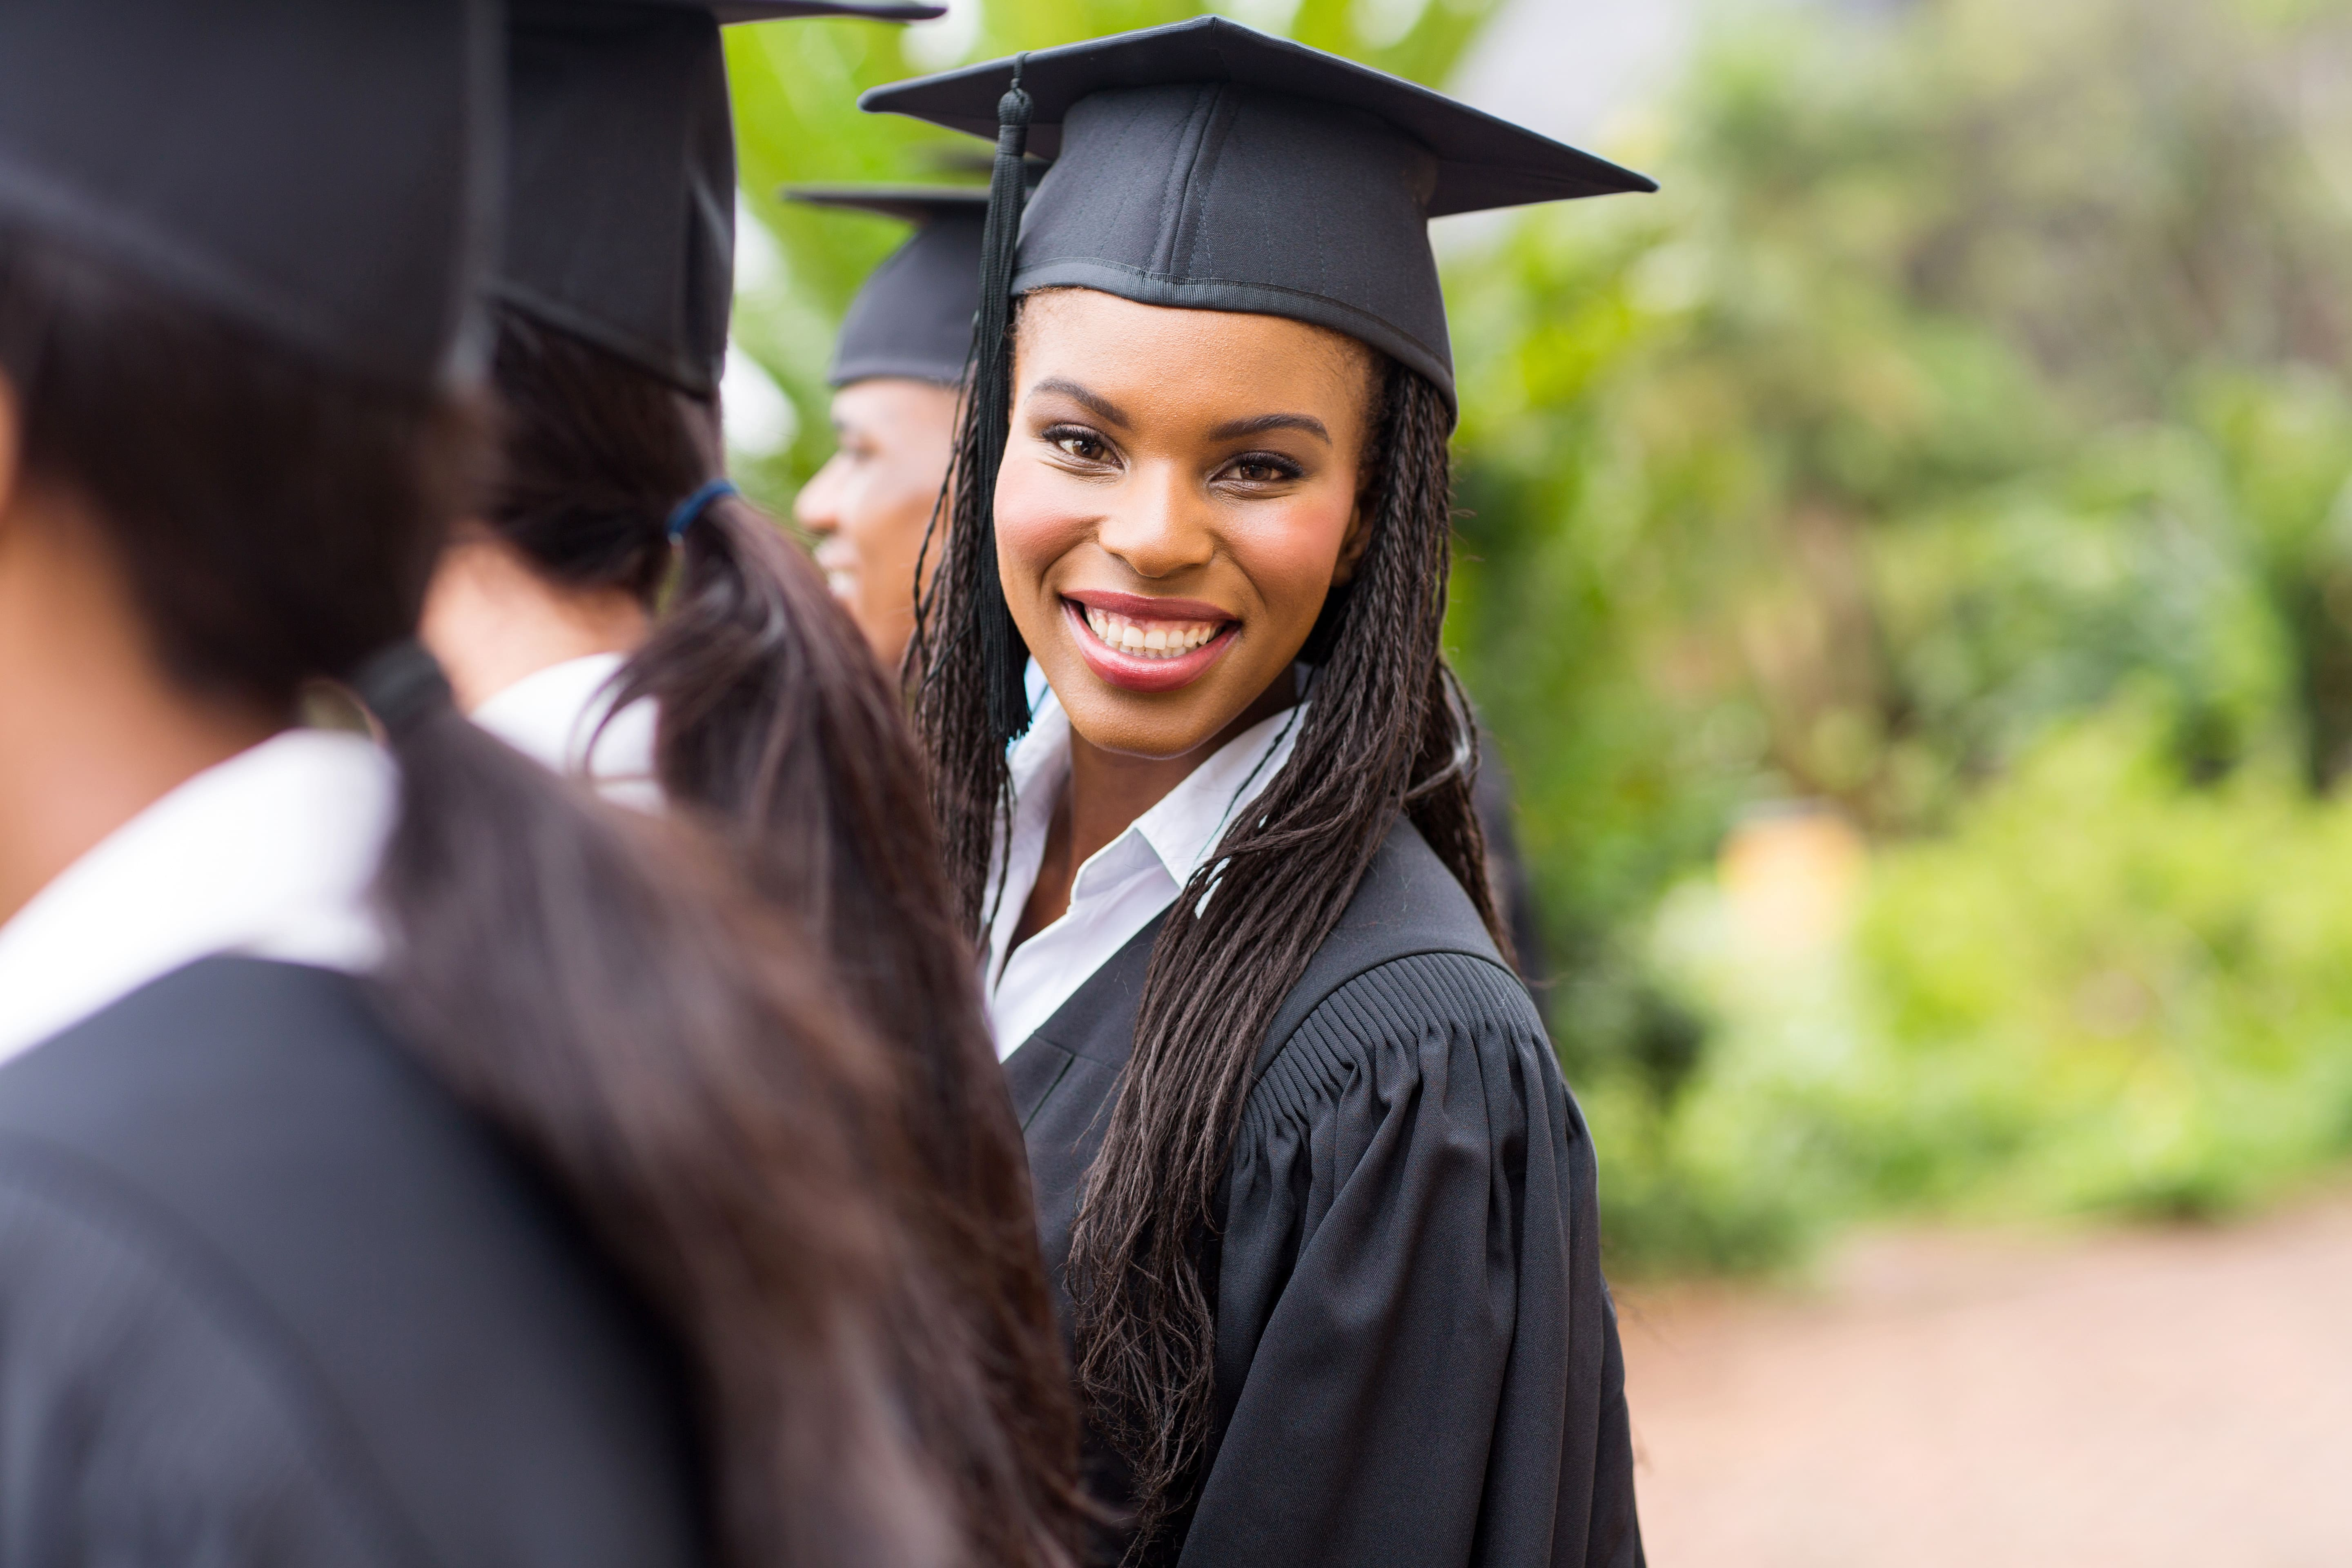 Young woman graduating from college.